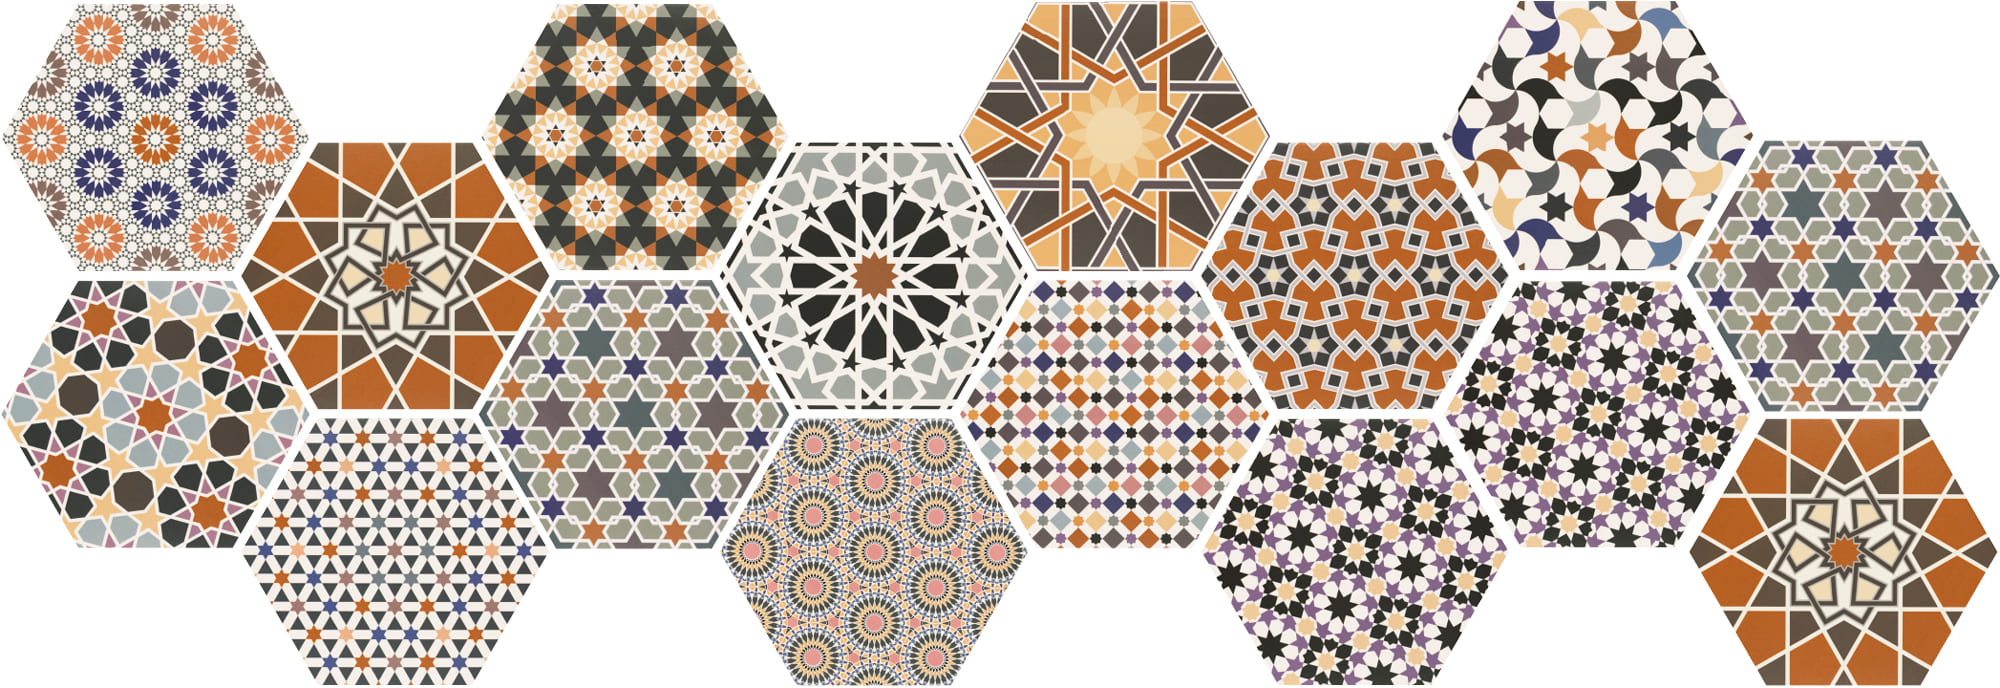 Multi-coloured bold hexagon décor tile 285x330mm Deco andalusi by Decobella tiles - South Africa 285x330mm shiny finish hexagon tile for use on floors or walls.